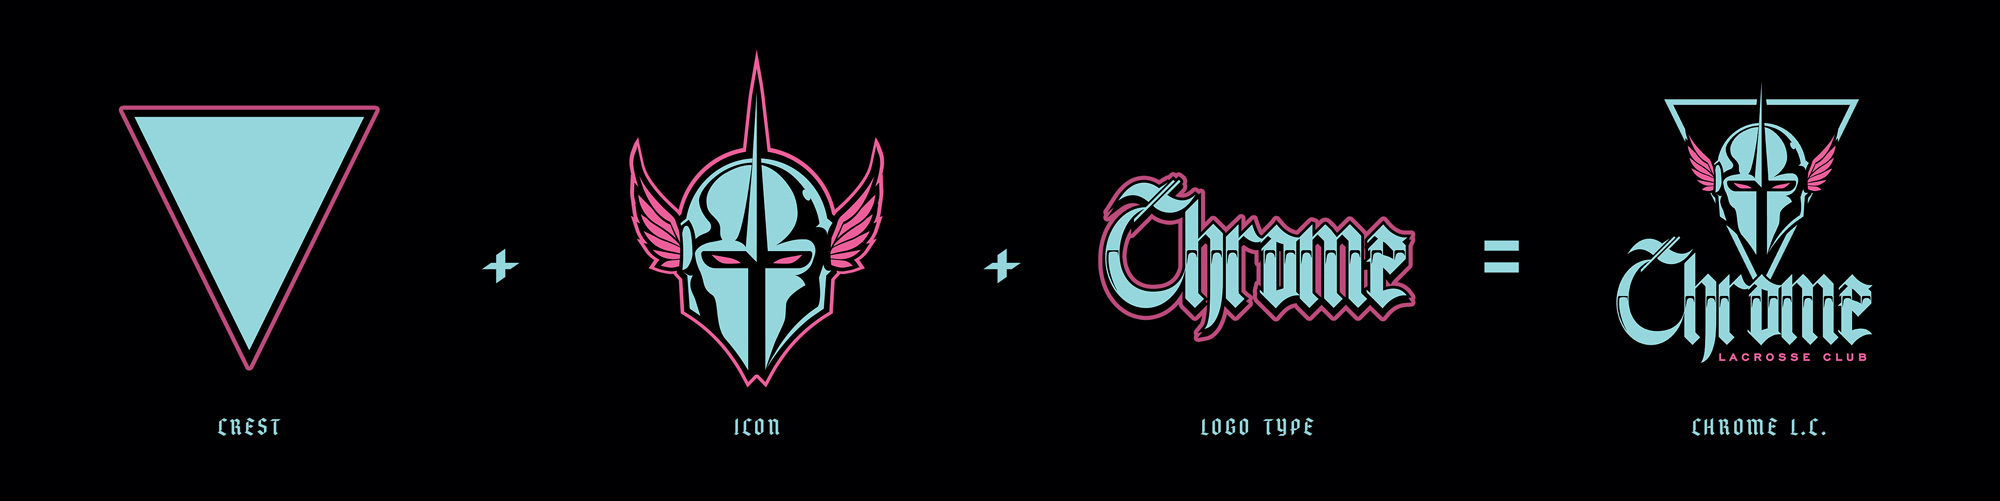 Brand New: New Logo and Identity for Premiere Lacrosse League (and